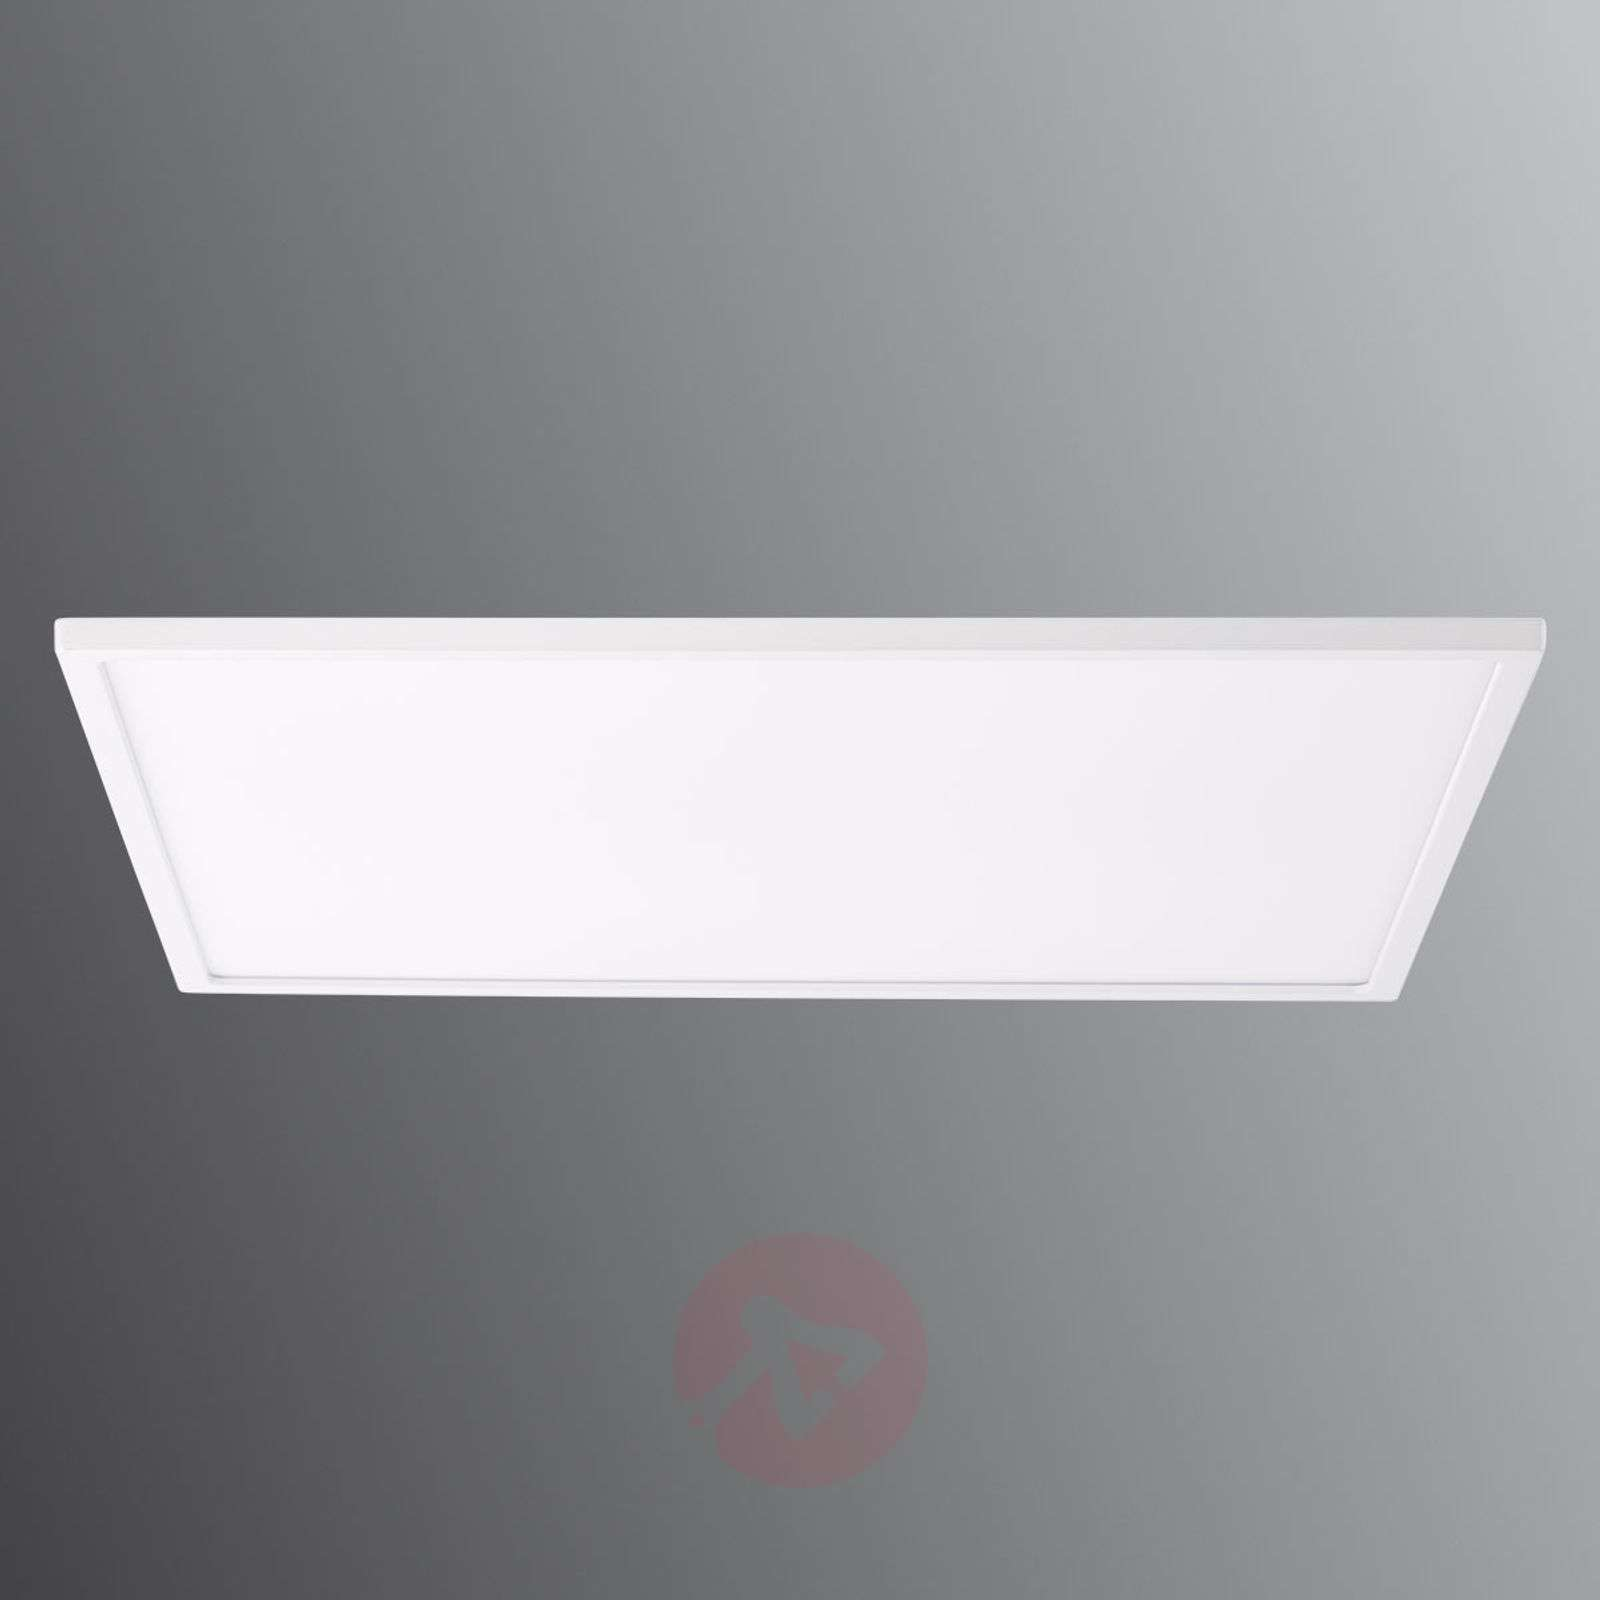 Via wandschakelaar dimbare LED plafondlamp Ceres-1509254-01